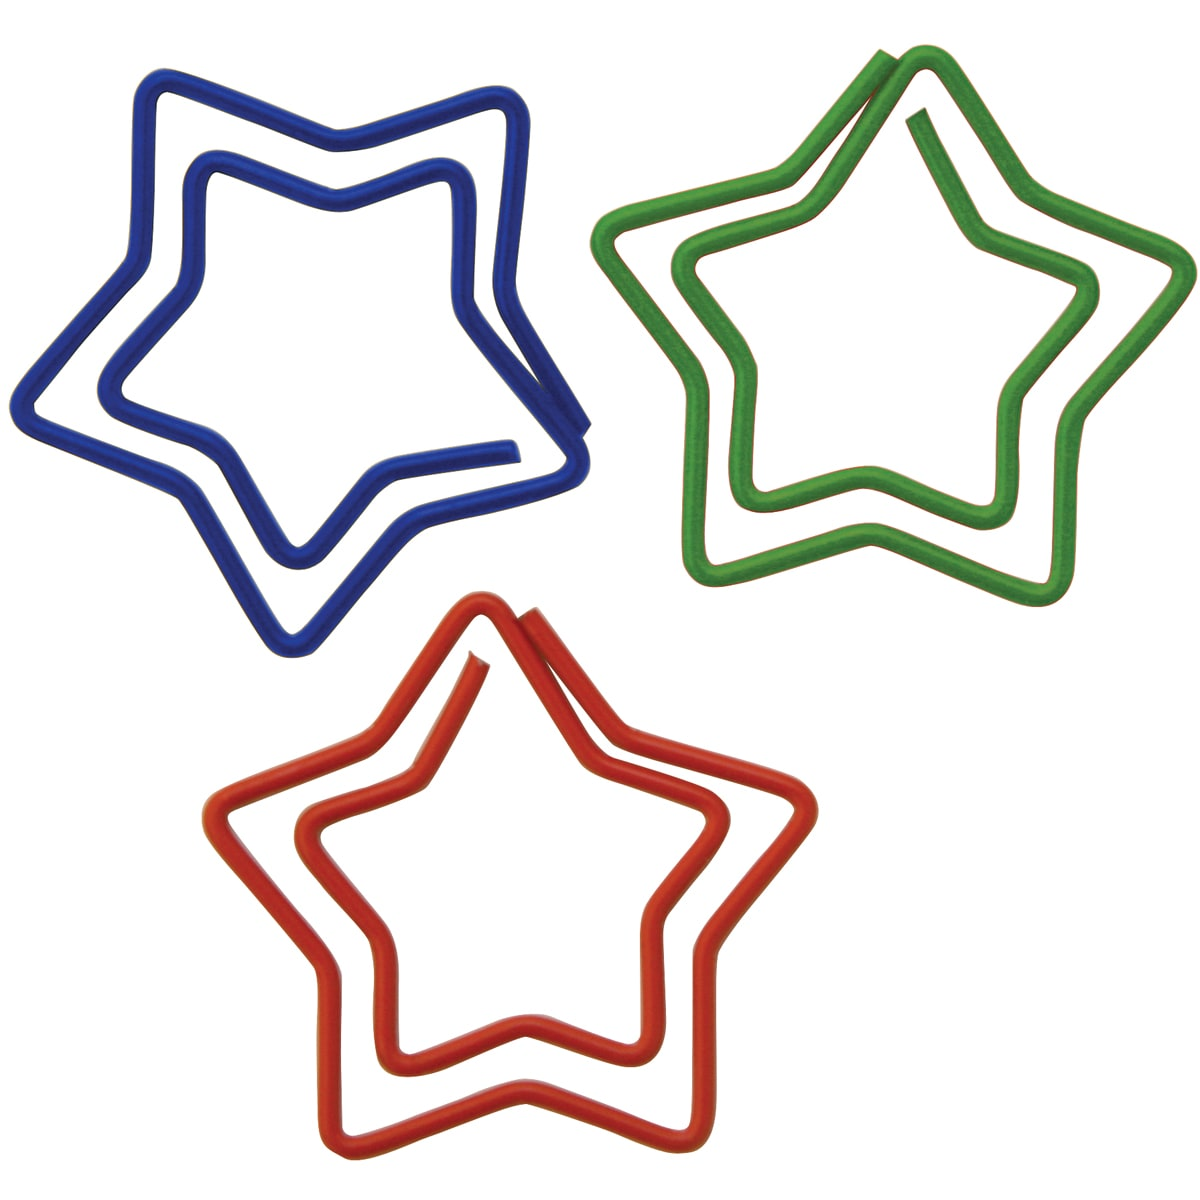 Baumgartens Star-shaped Carded Paper Clips (Pack of 20) (...